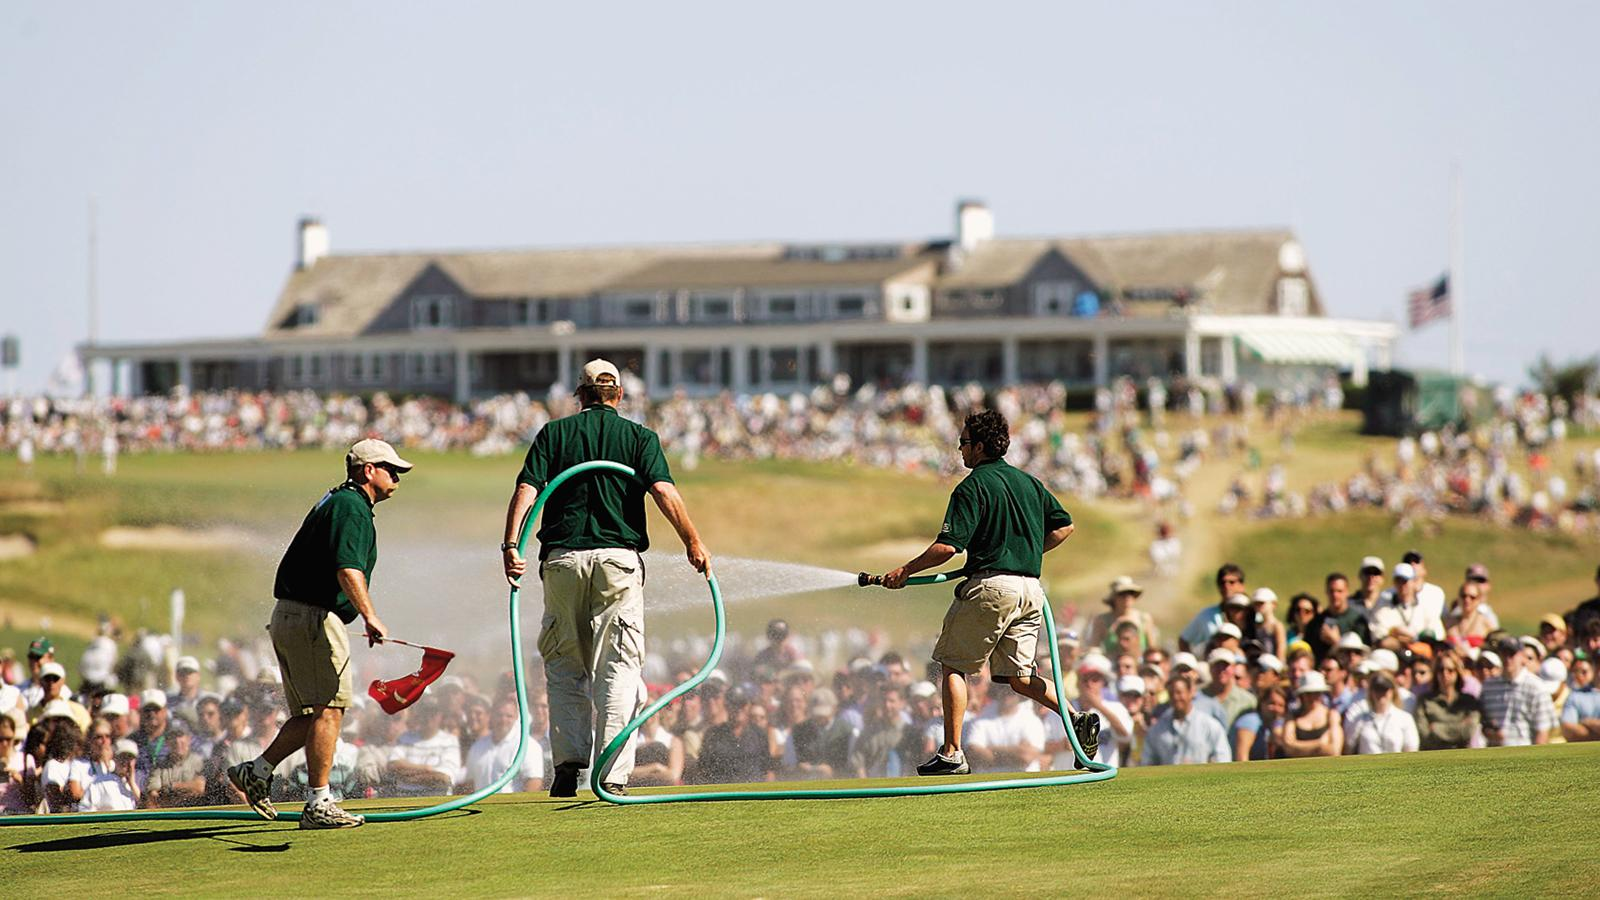 The Biggest Show in Golf